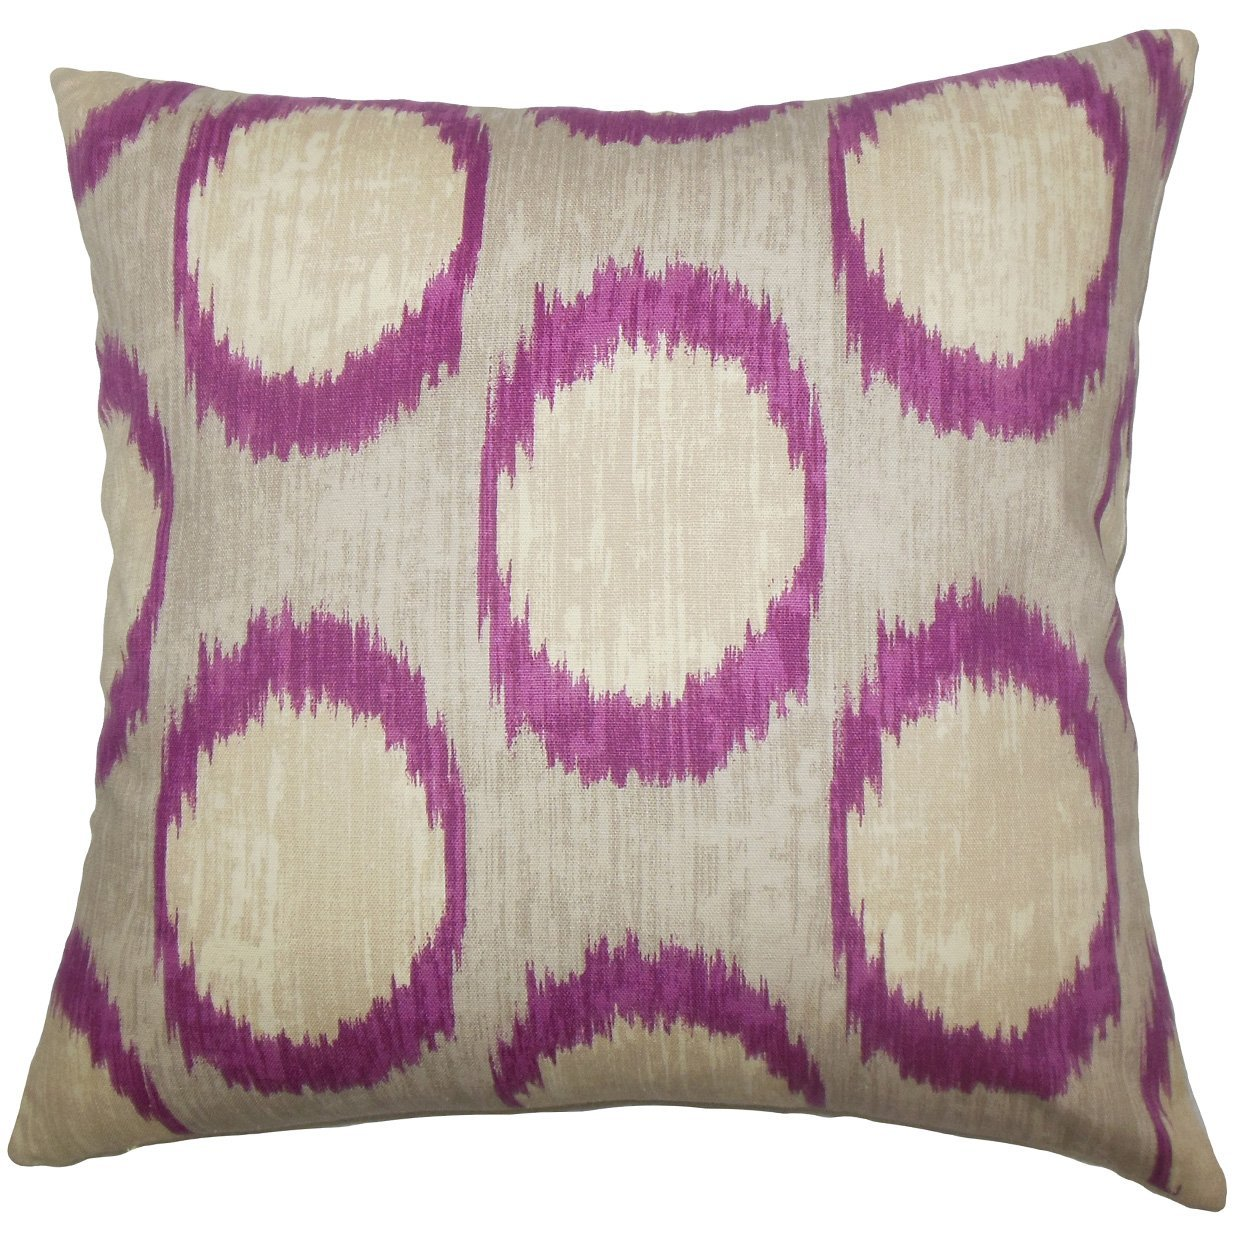 The Pillow Collection Ridha Ikat Bedding Sham Currant Euro 26 X 26 Home Kitchen Throw Pillow Covers